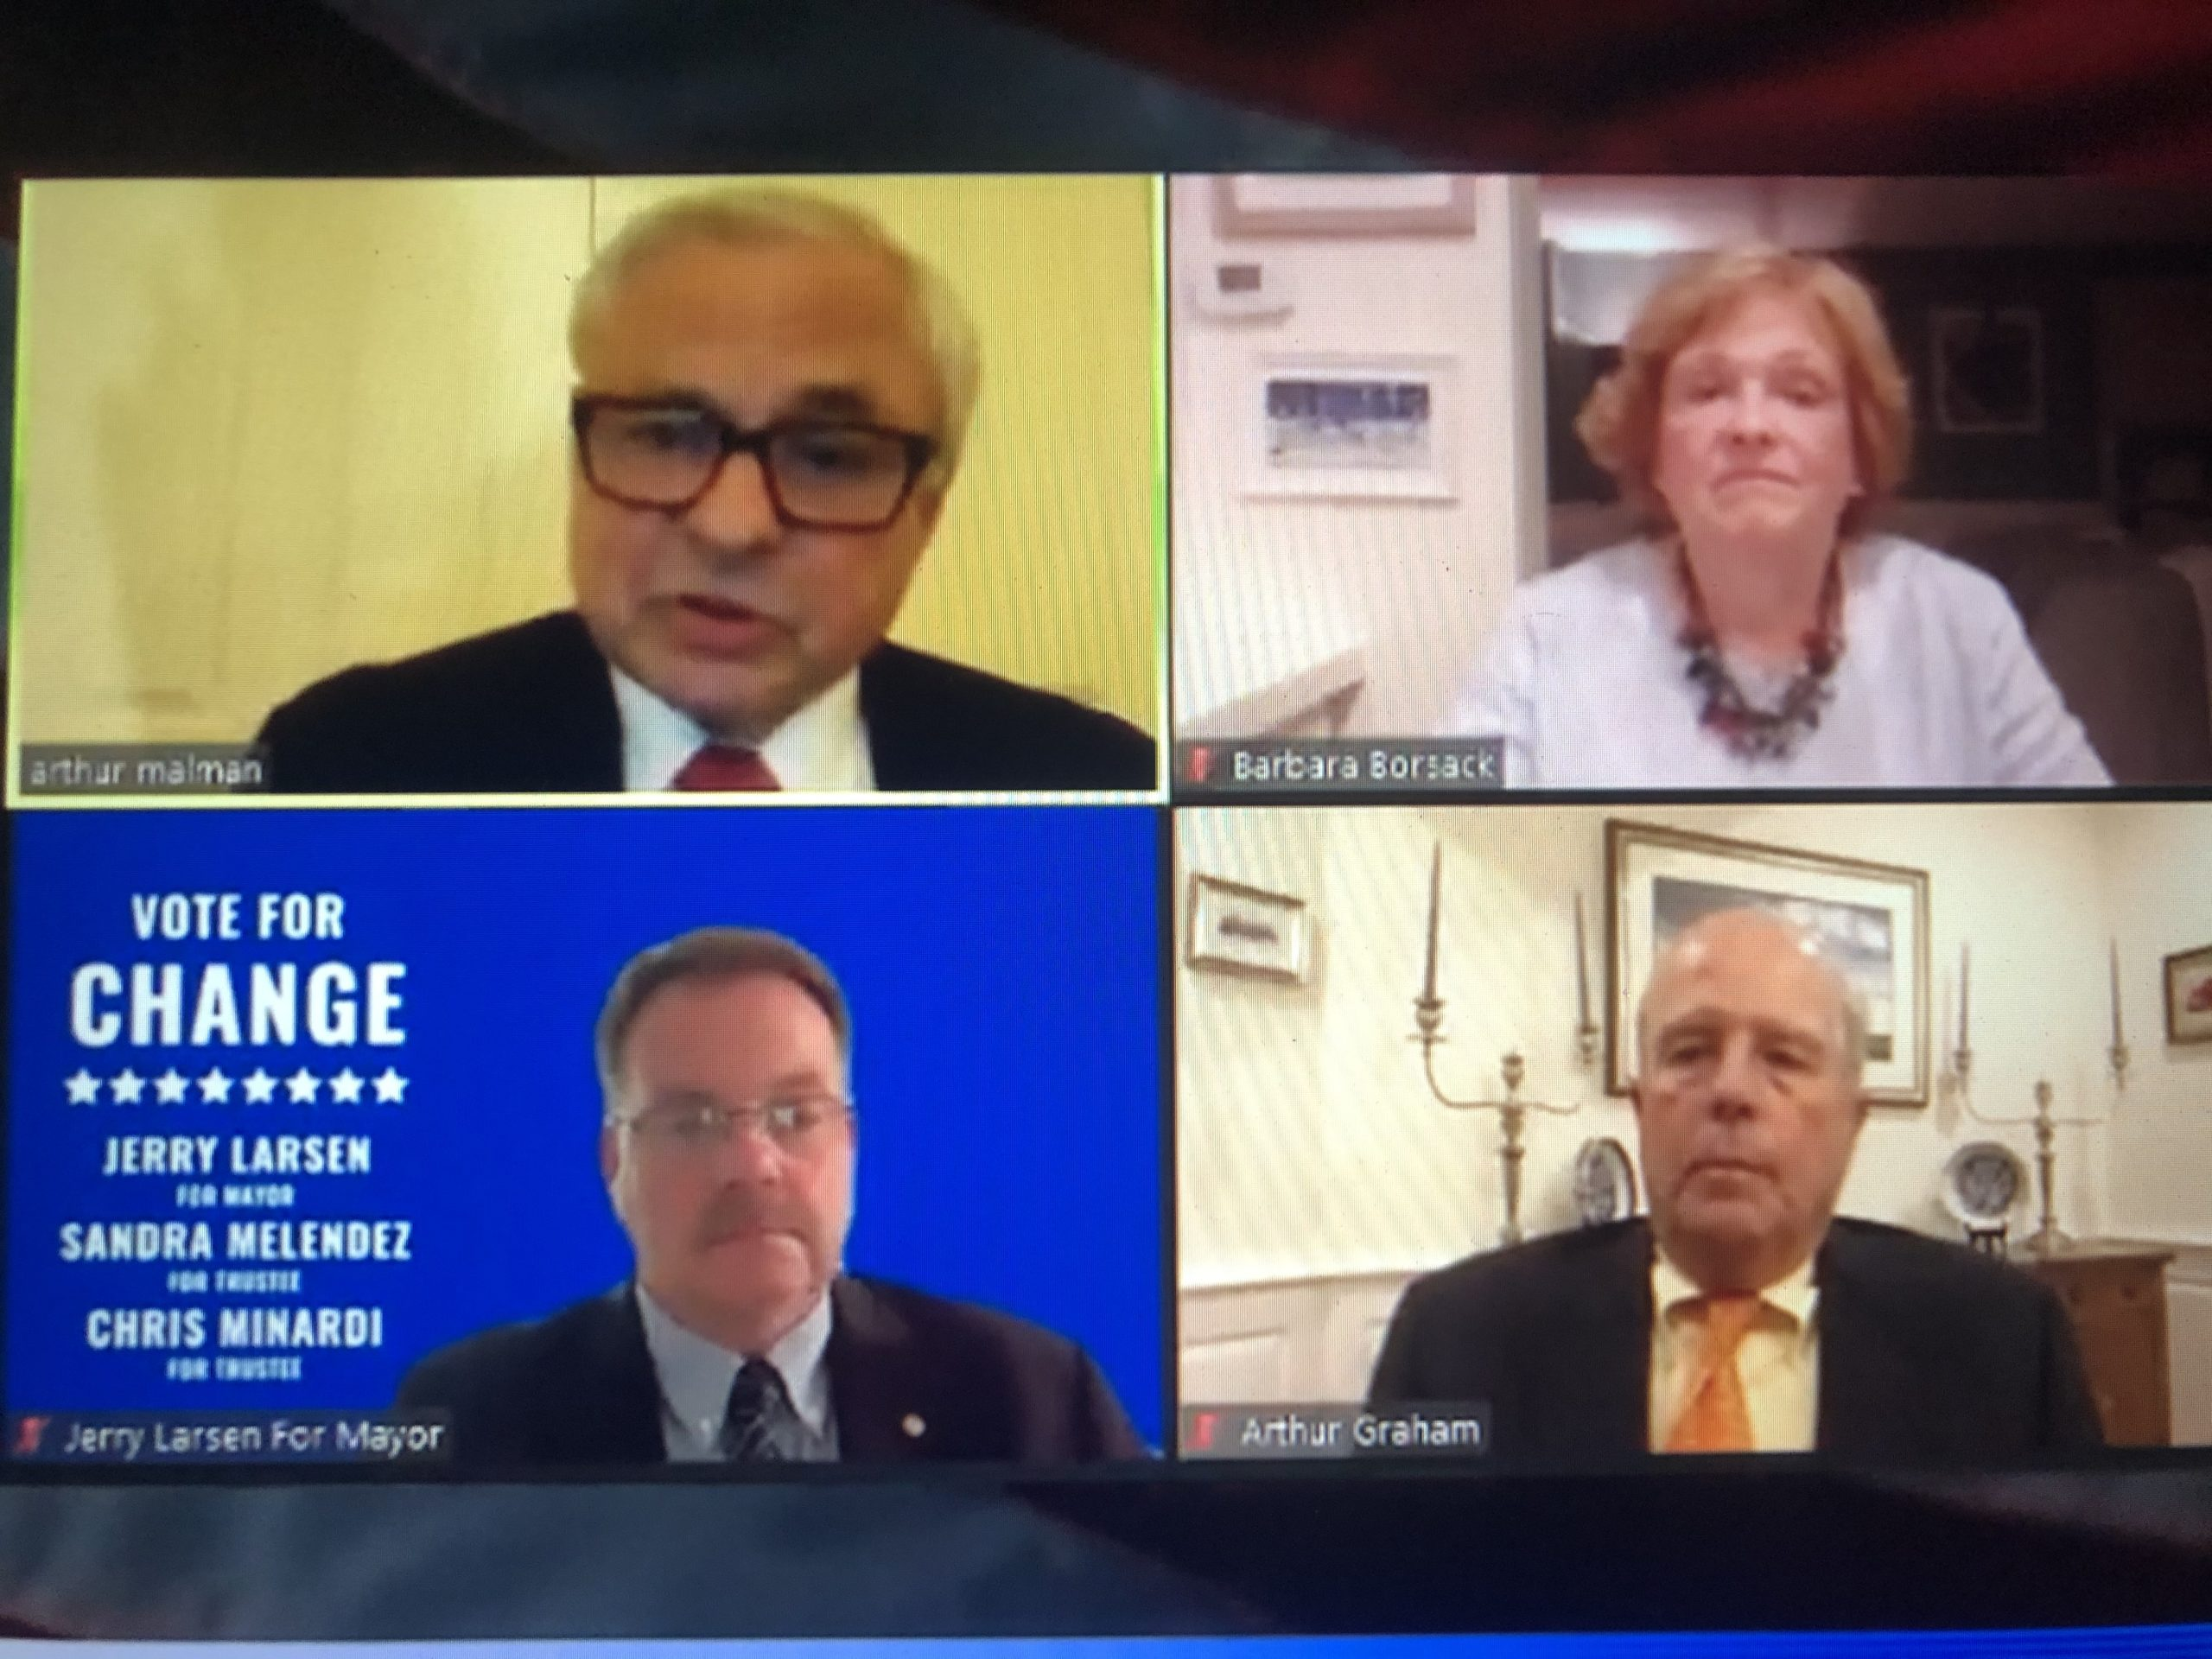 The three candidates for East Hampton Village mayor - Jerry Larsen, Barbara Borsack and Arthur Graham - held a virtual debate with the East Hampton Group for Good Government's host, Arthur Malman.